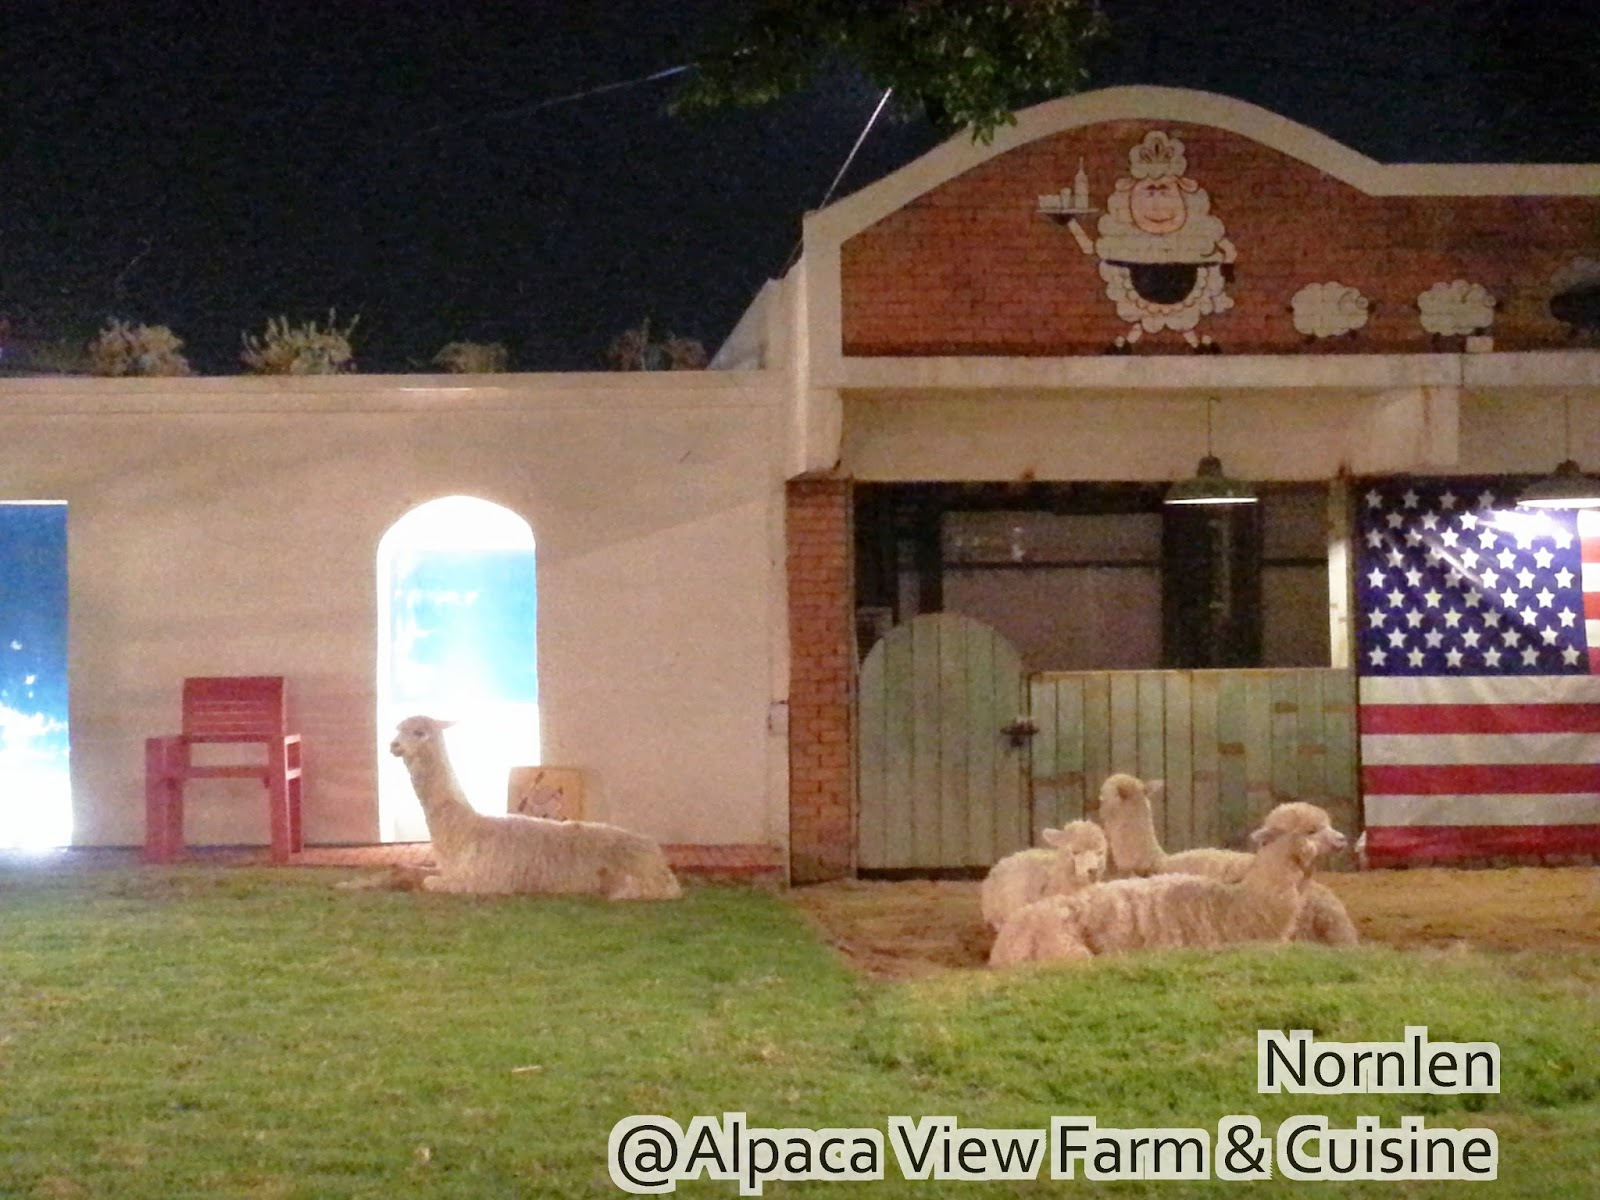 alpaca view farm cuisine